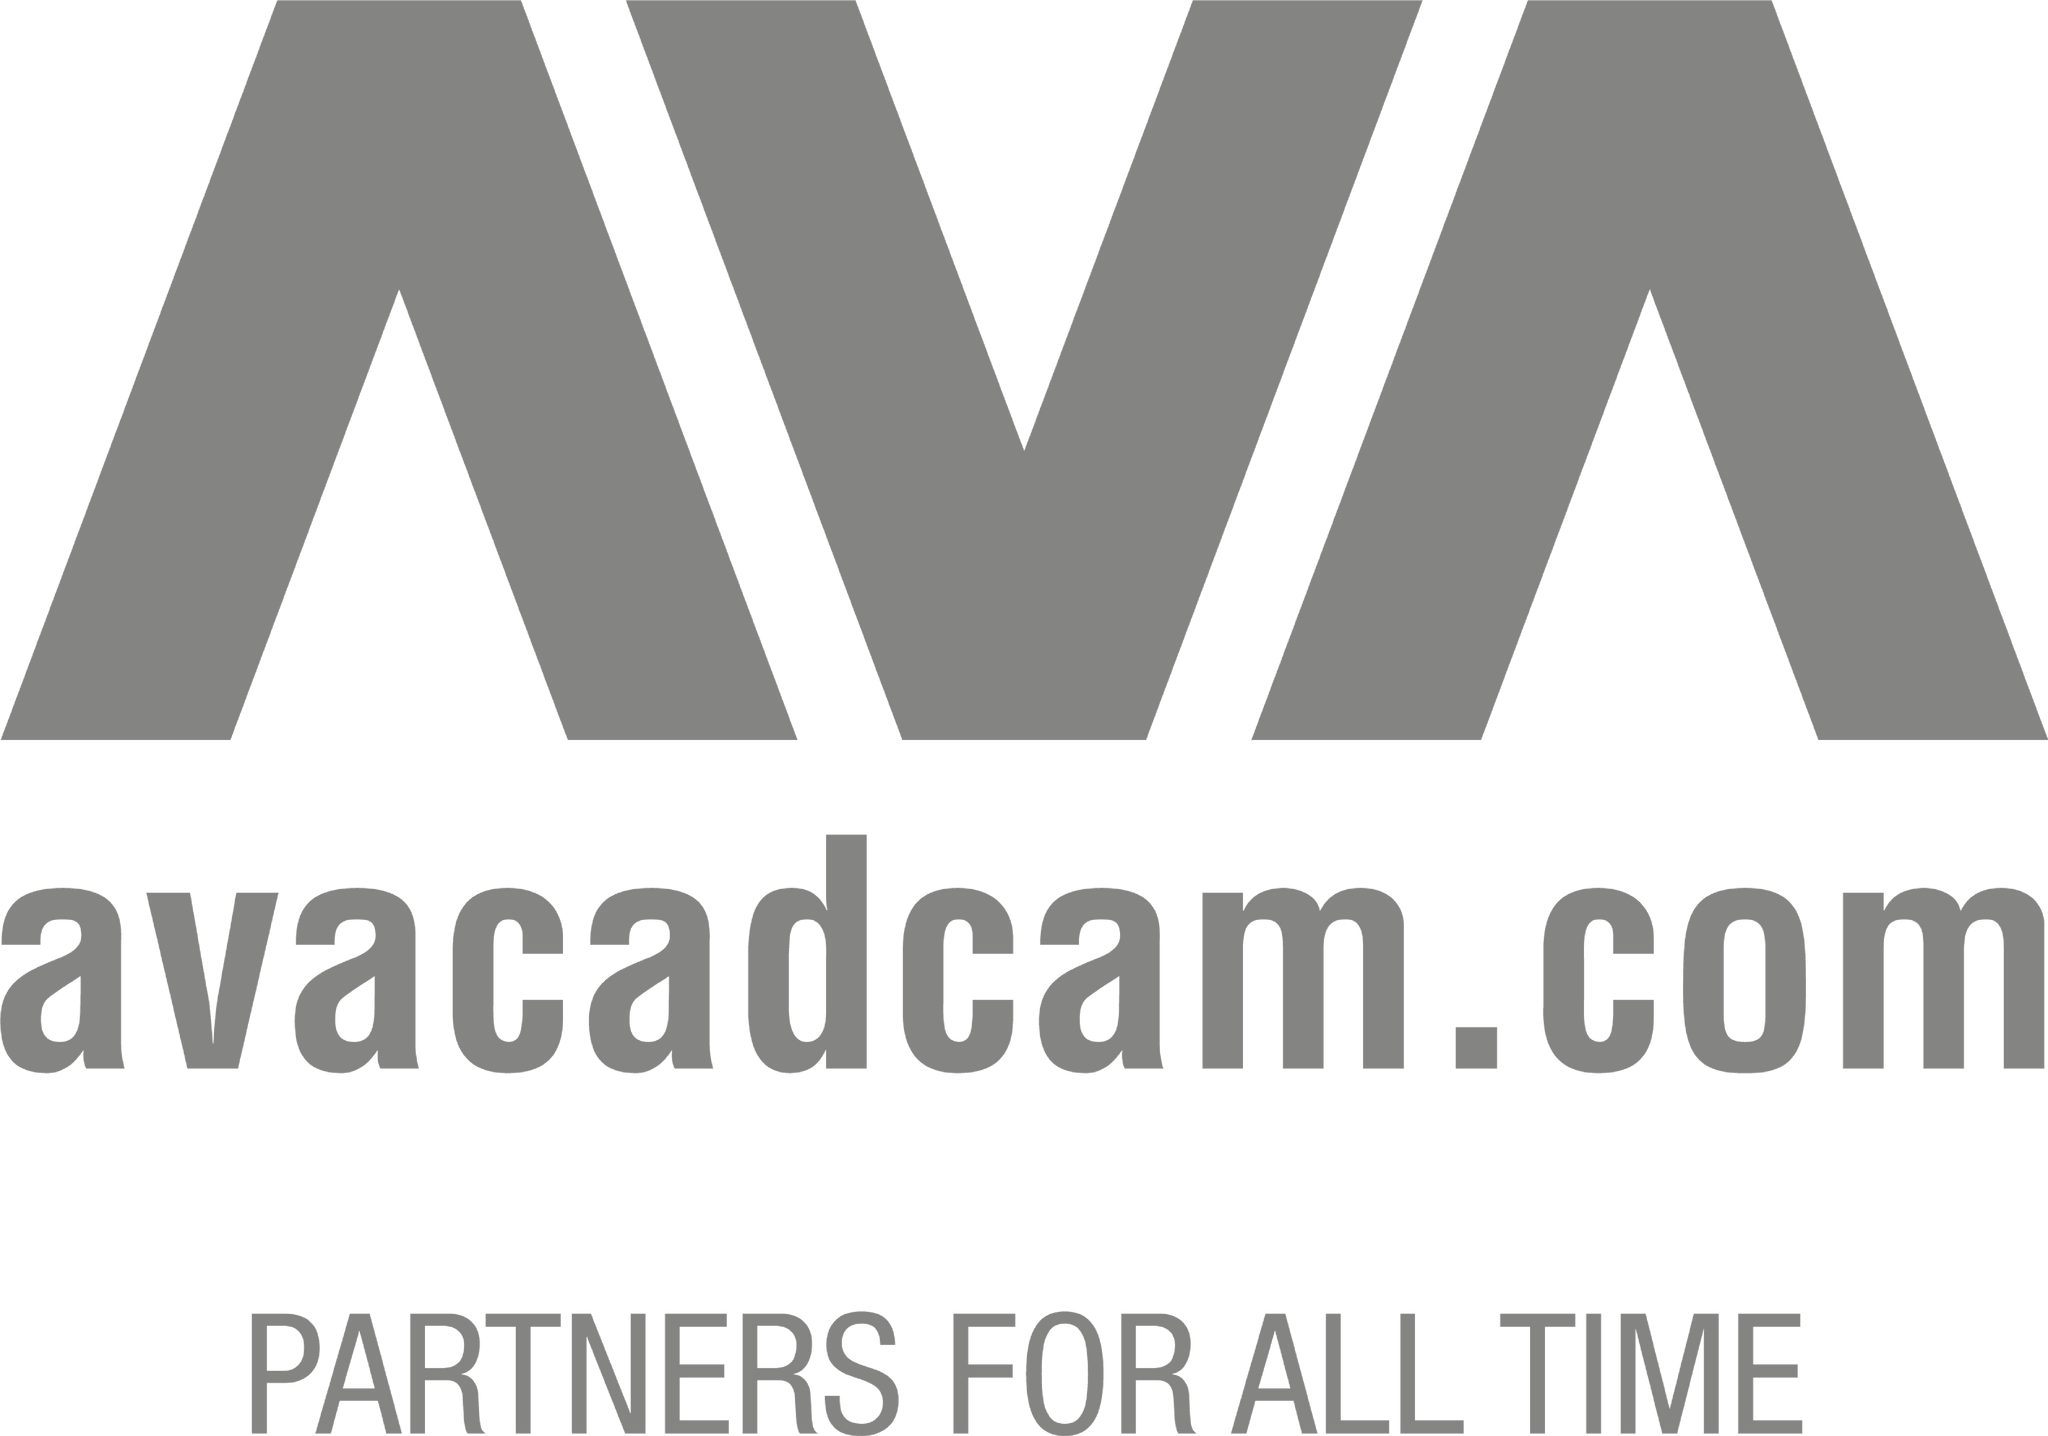 AVA Cad/Cam Group Ltd